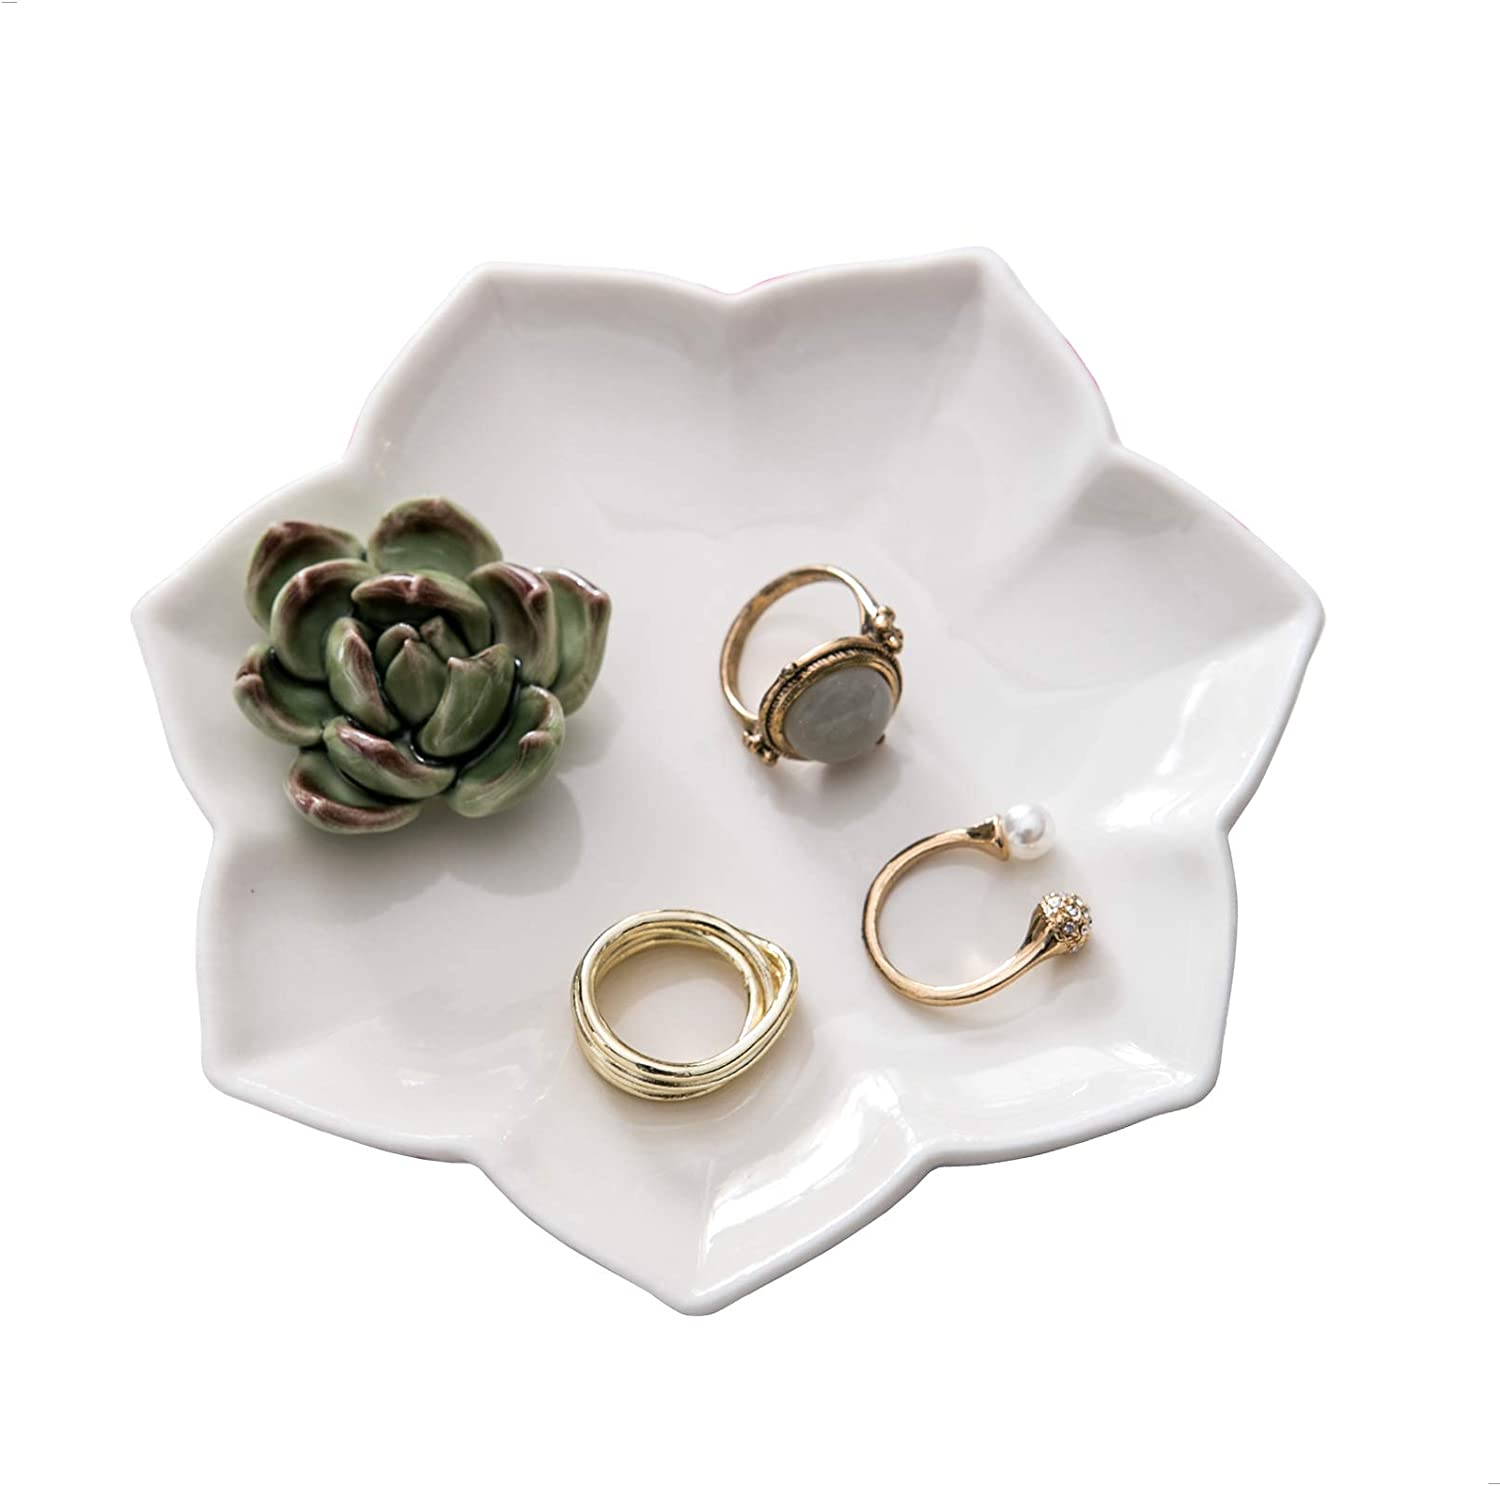 Kimdio Ring Holder Succulents Jewelry Dish Tray Japan's largest assortment Trinket Necklace Deluxe